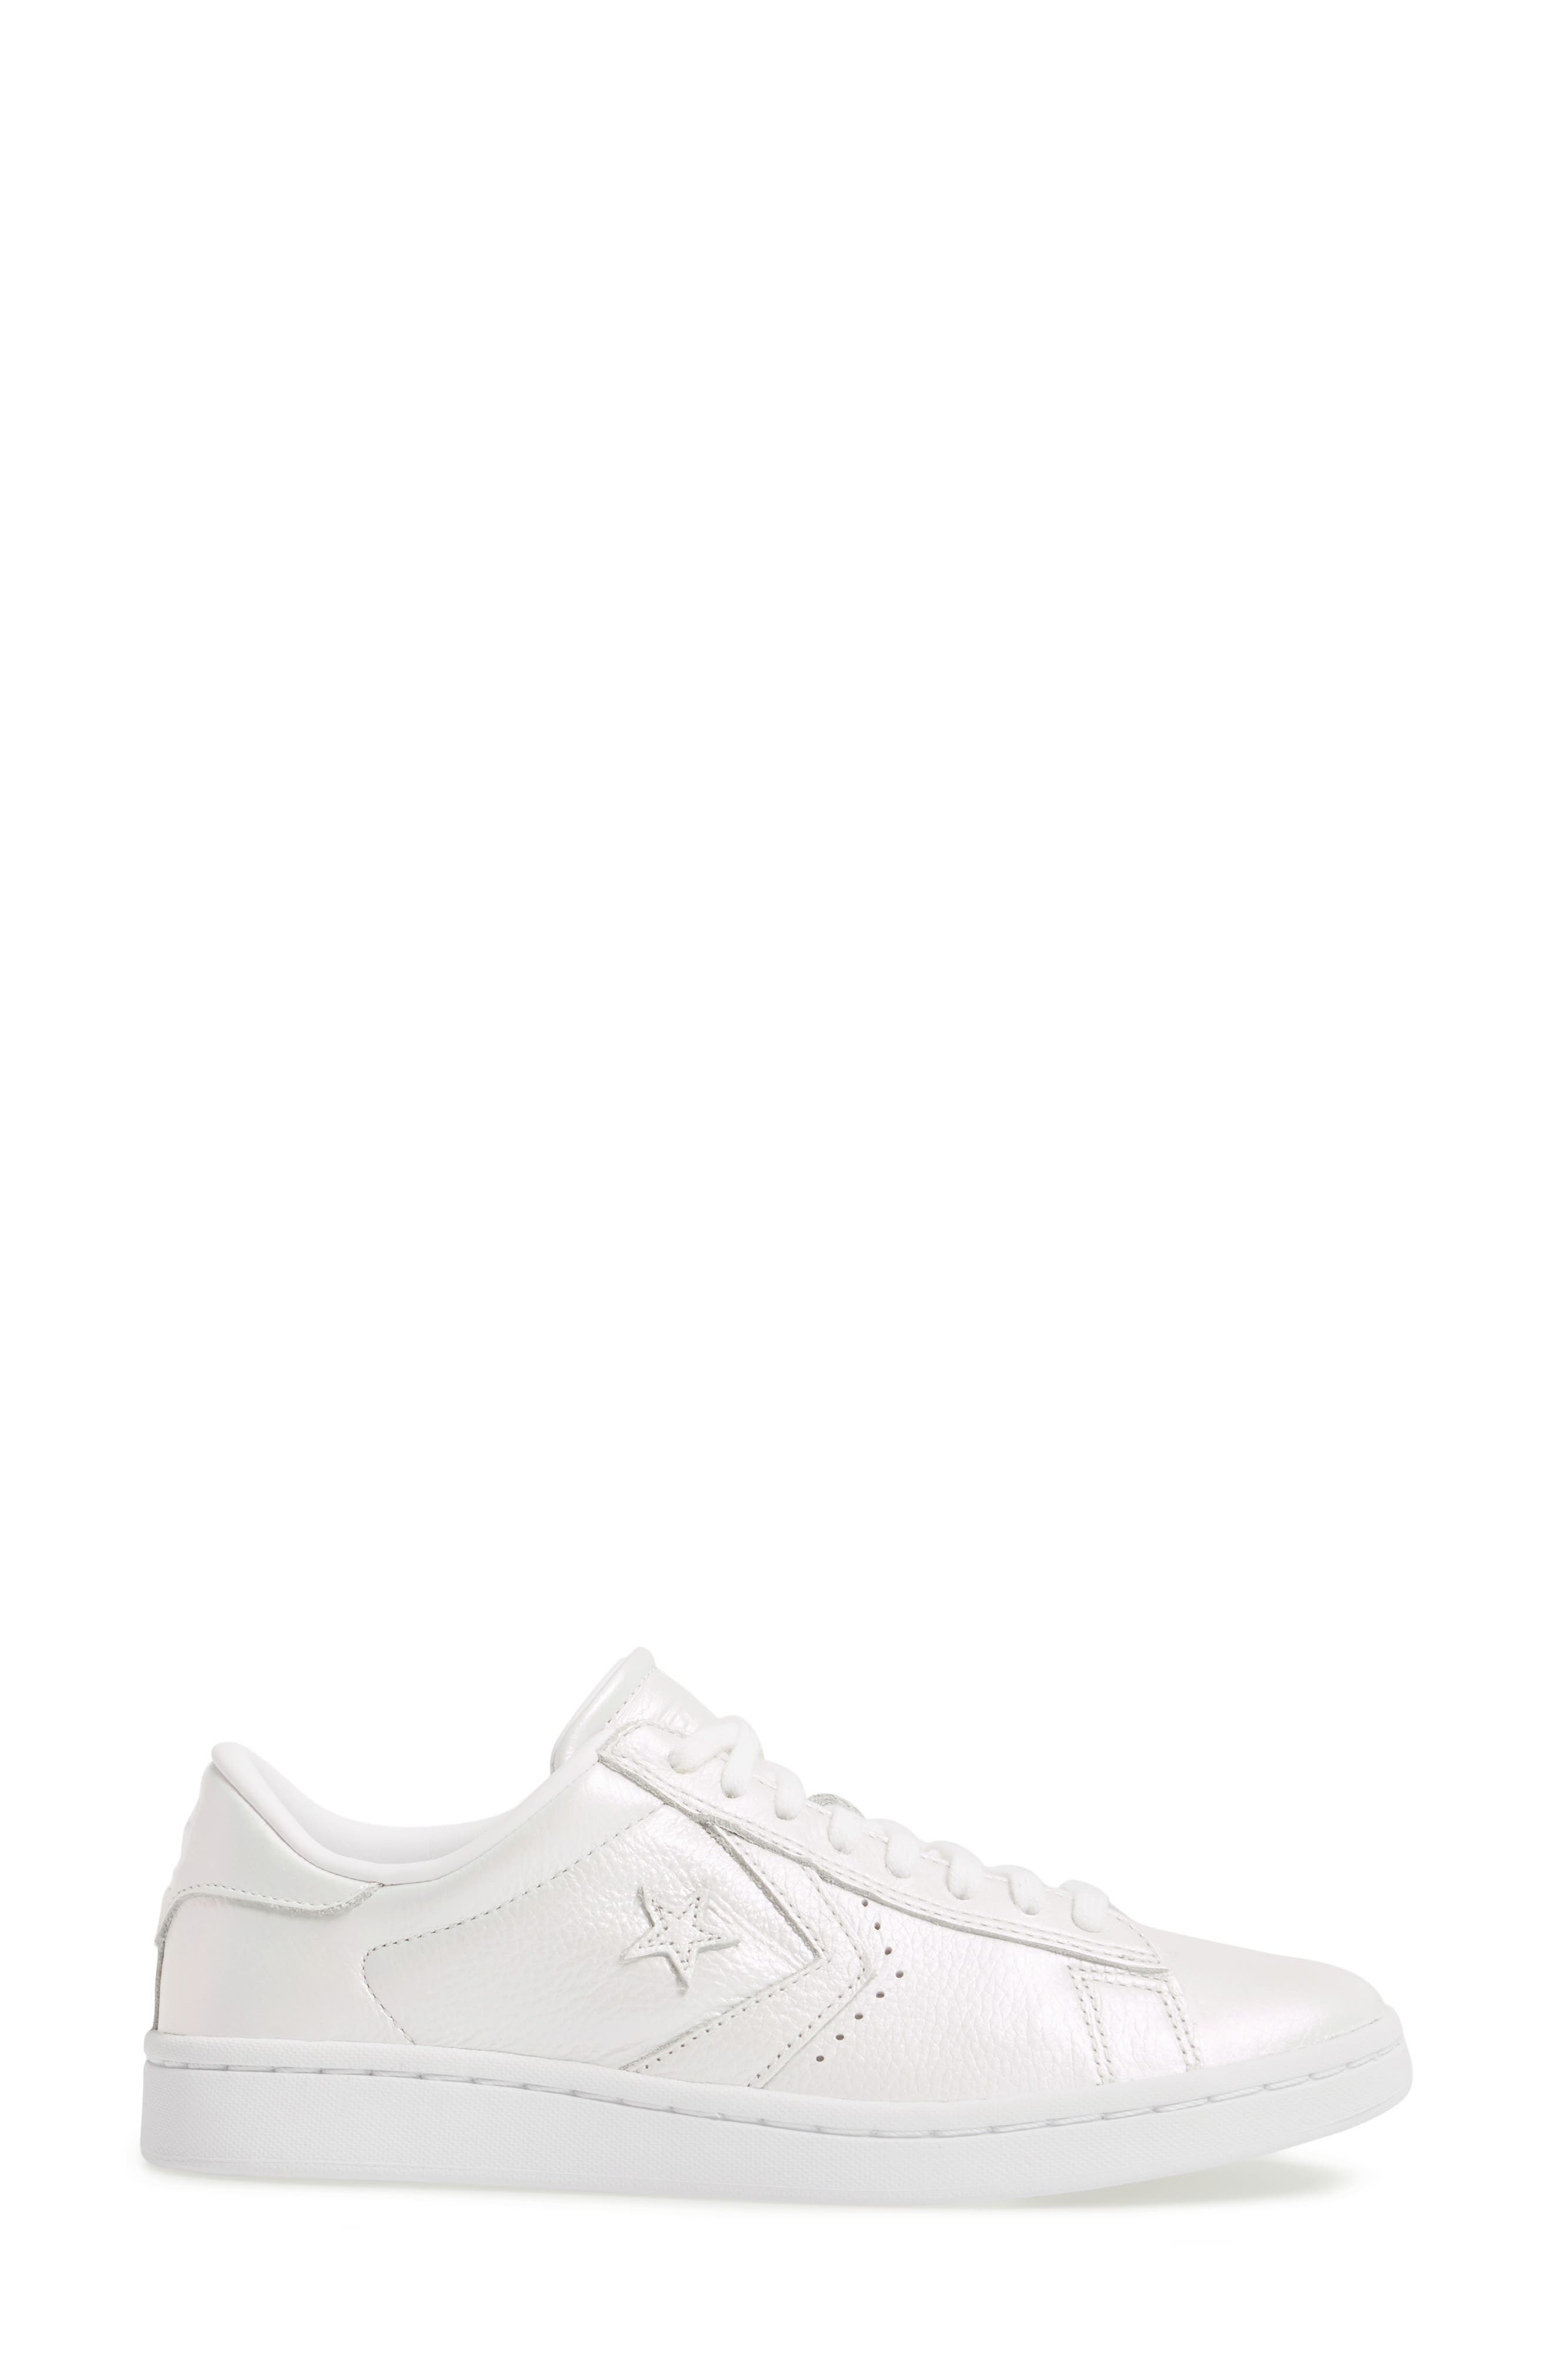 Pro Leather LP Sneaker,                             Alternate thumbnail 3, color,                             White Leather